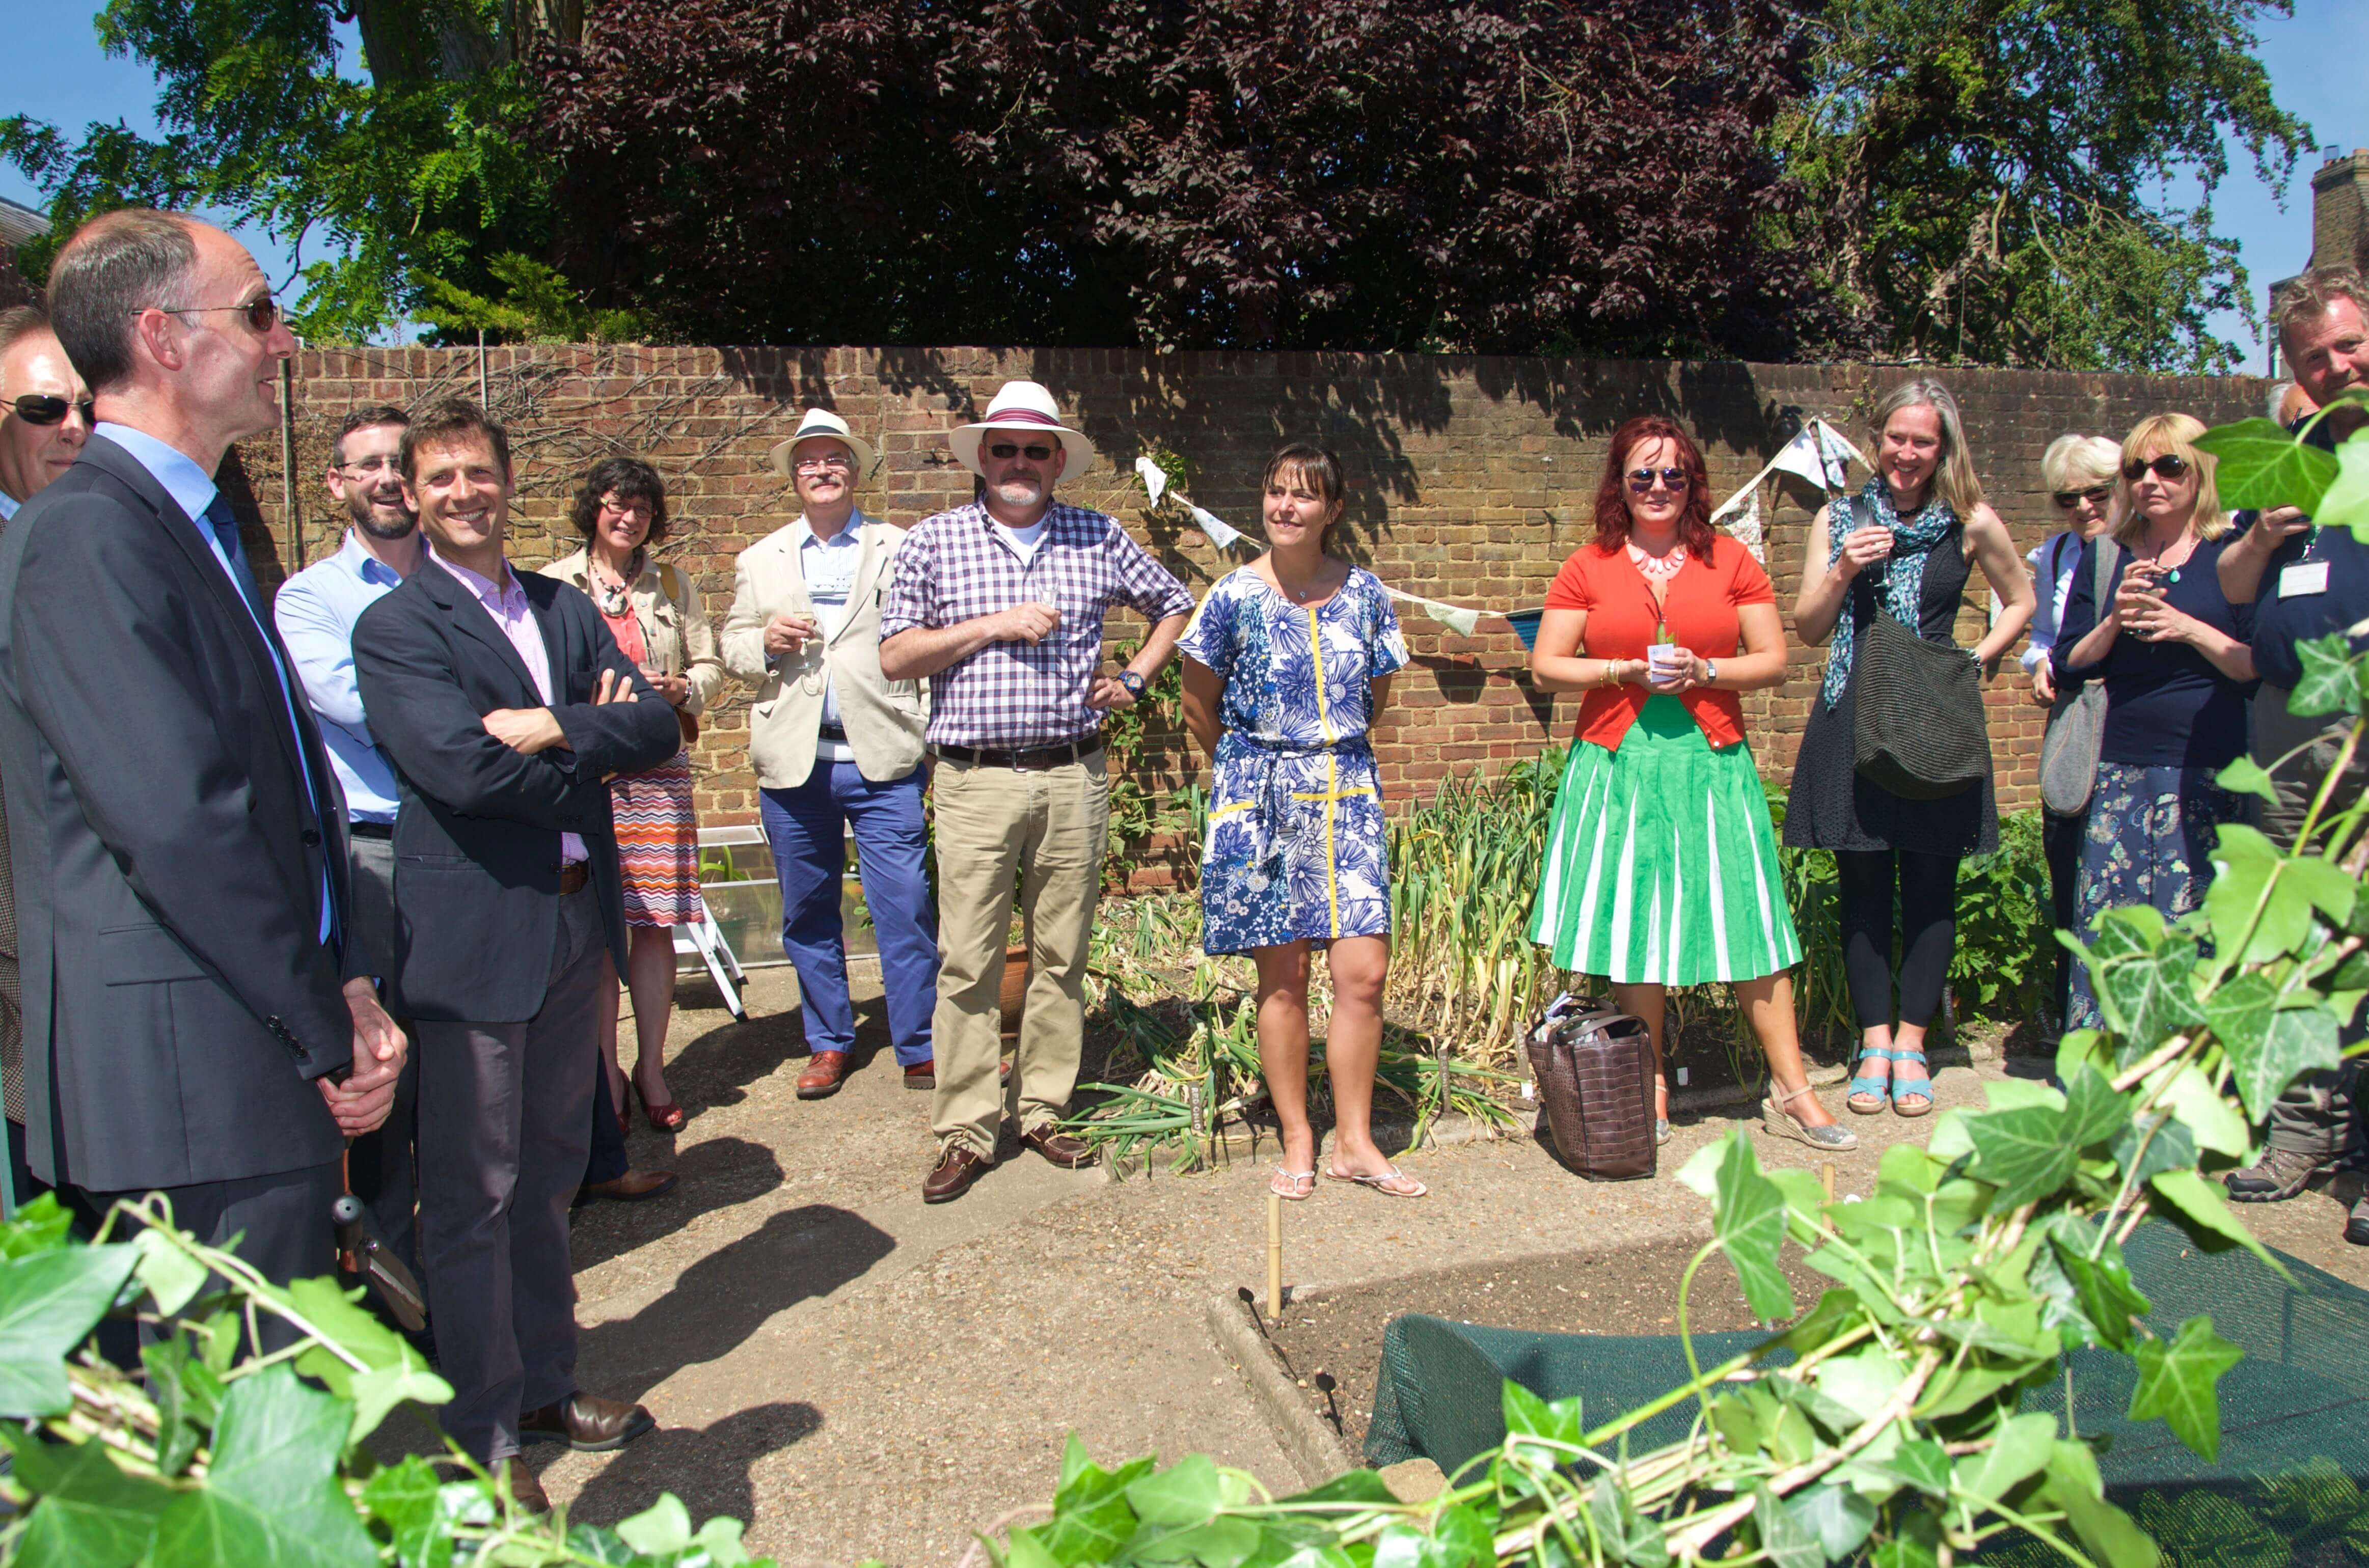 Opening ceremony of directors greenhouse at Kew Gardens